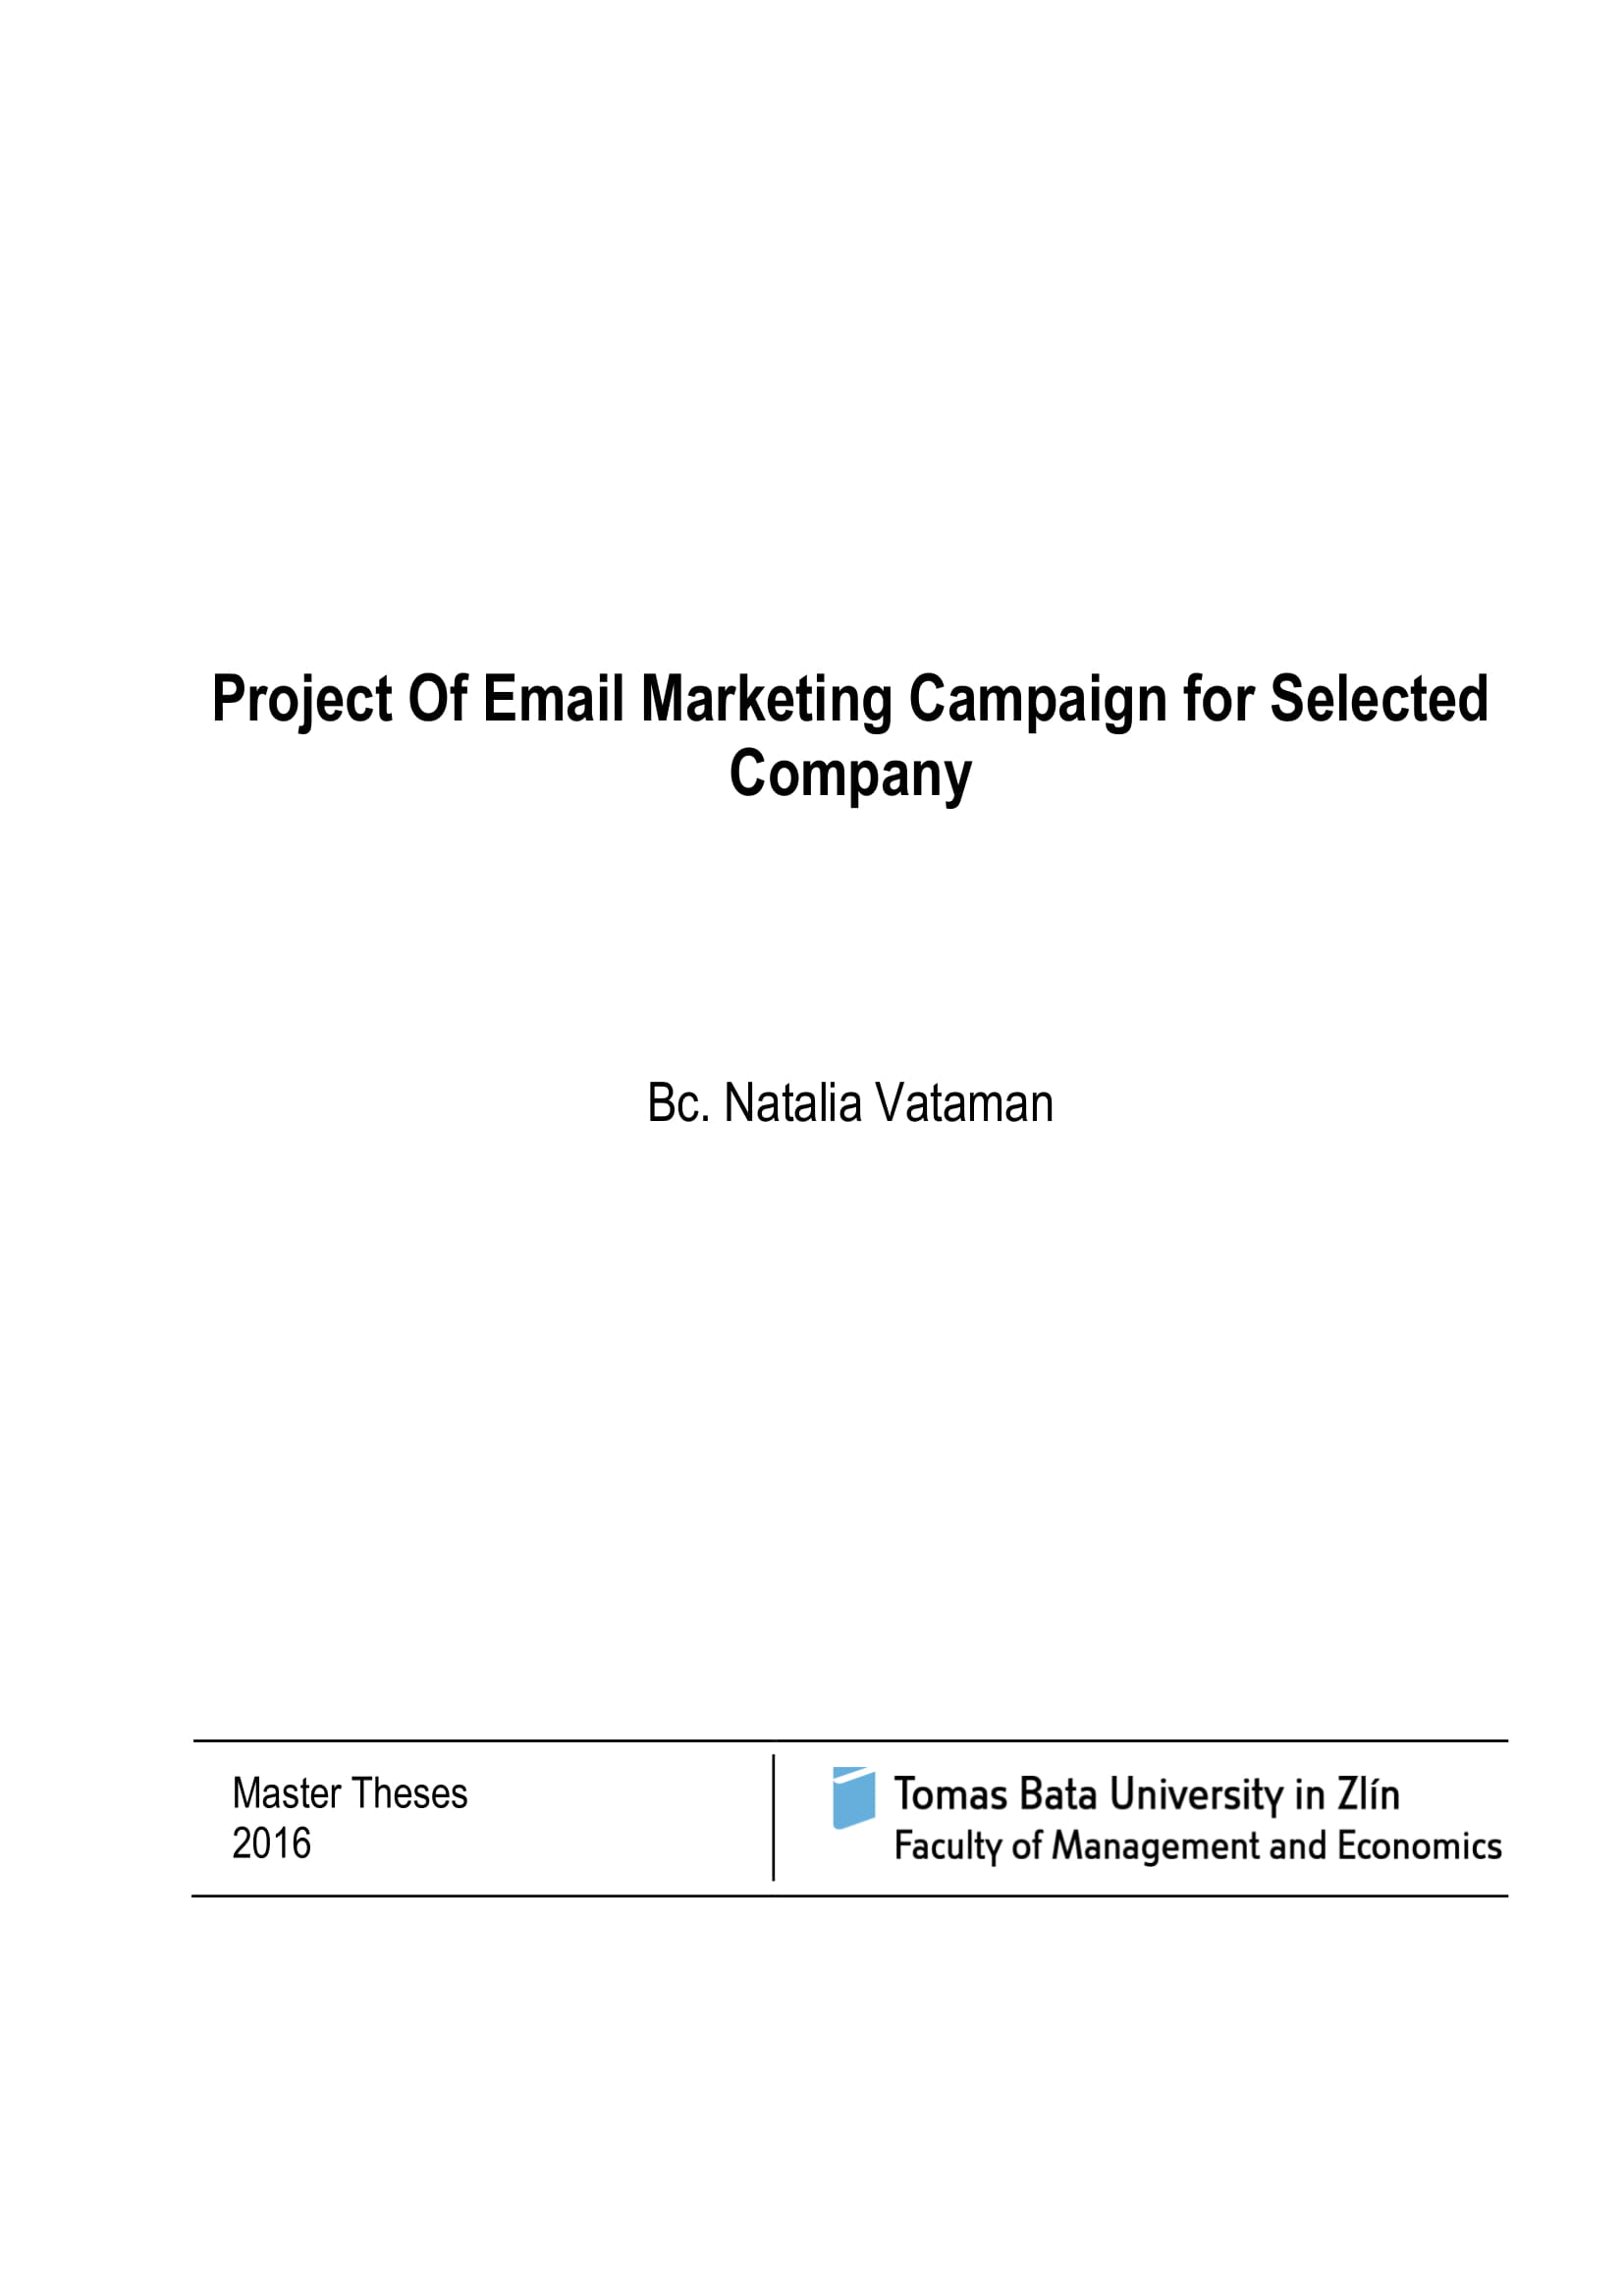 email marketing campaign project plan example 01